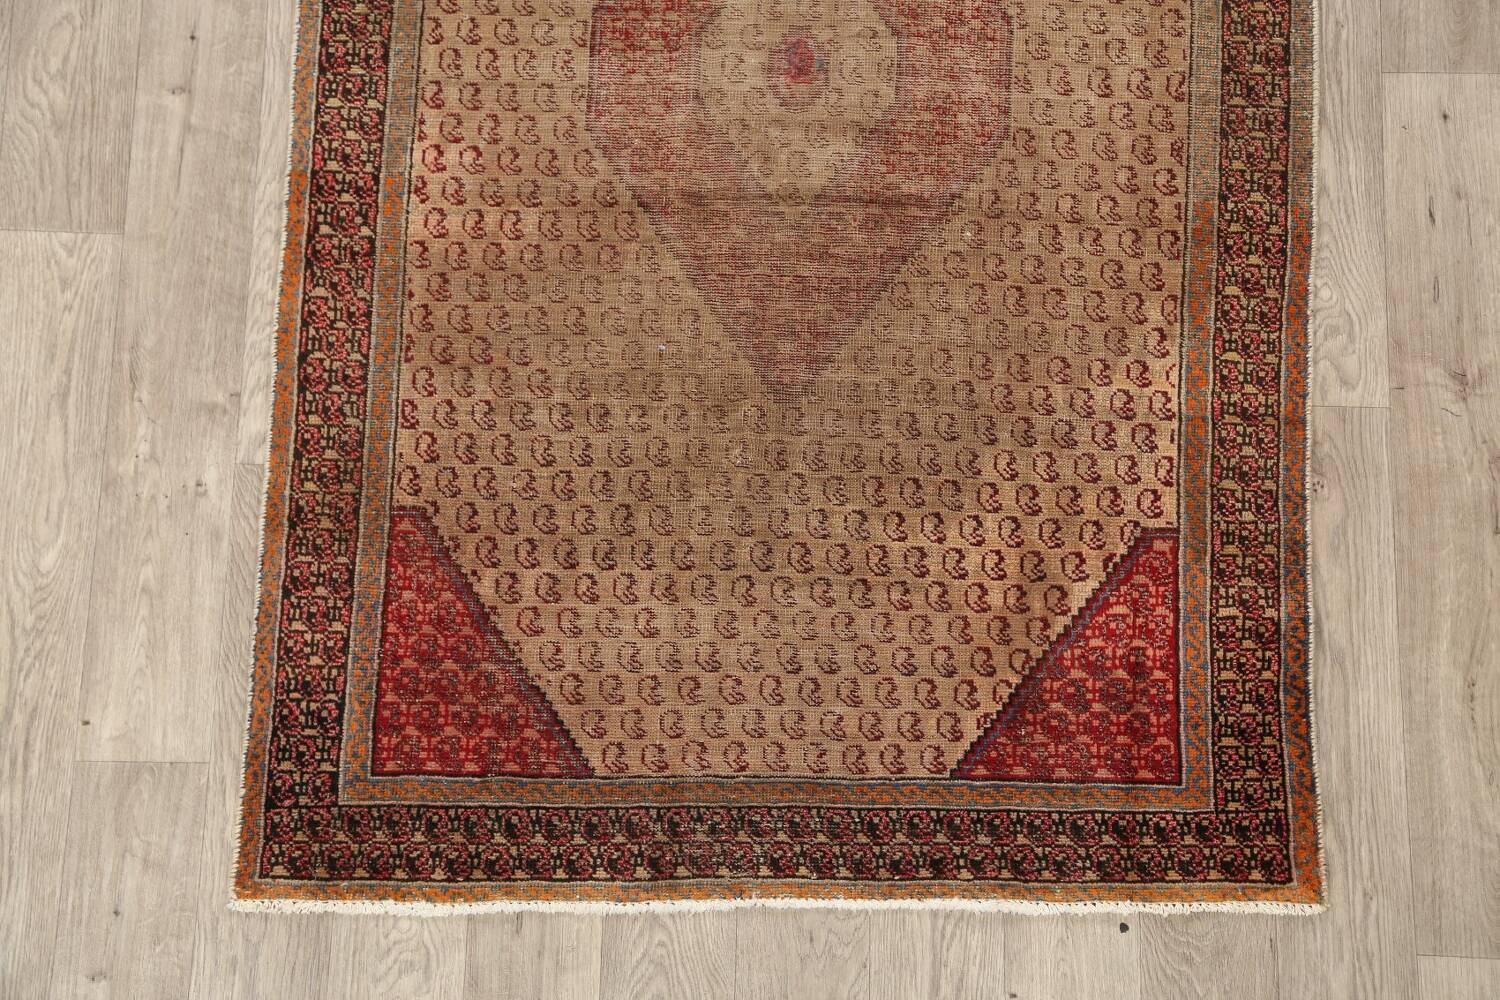 Antique Boteh Botemir Persian Area Rug 4x6 image 8